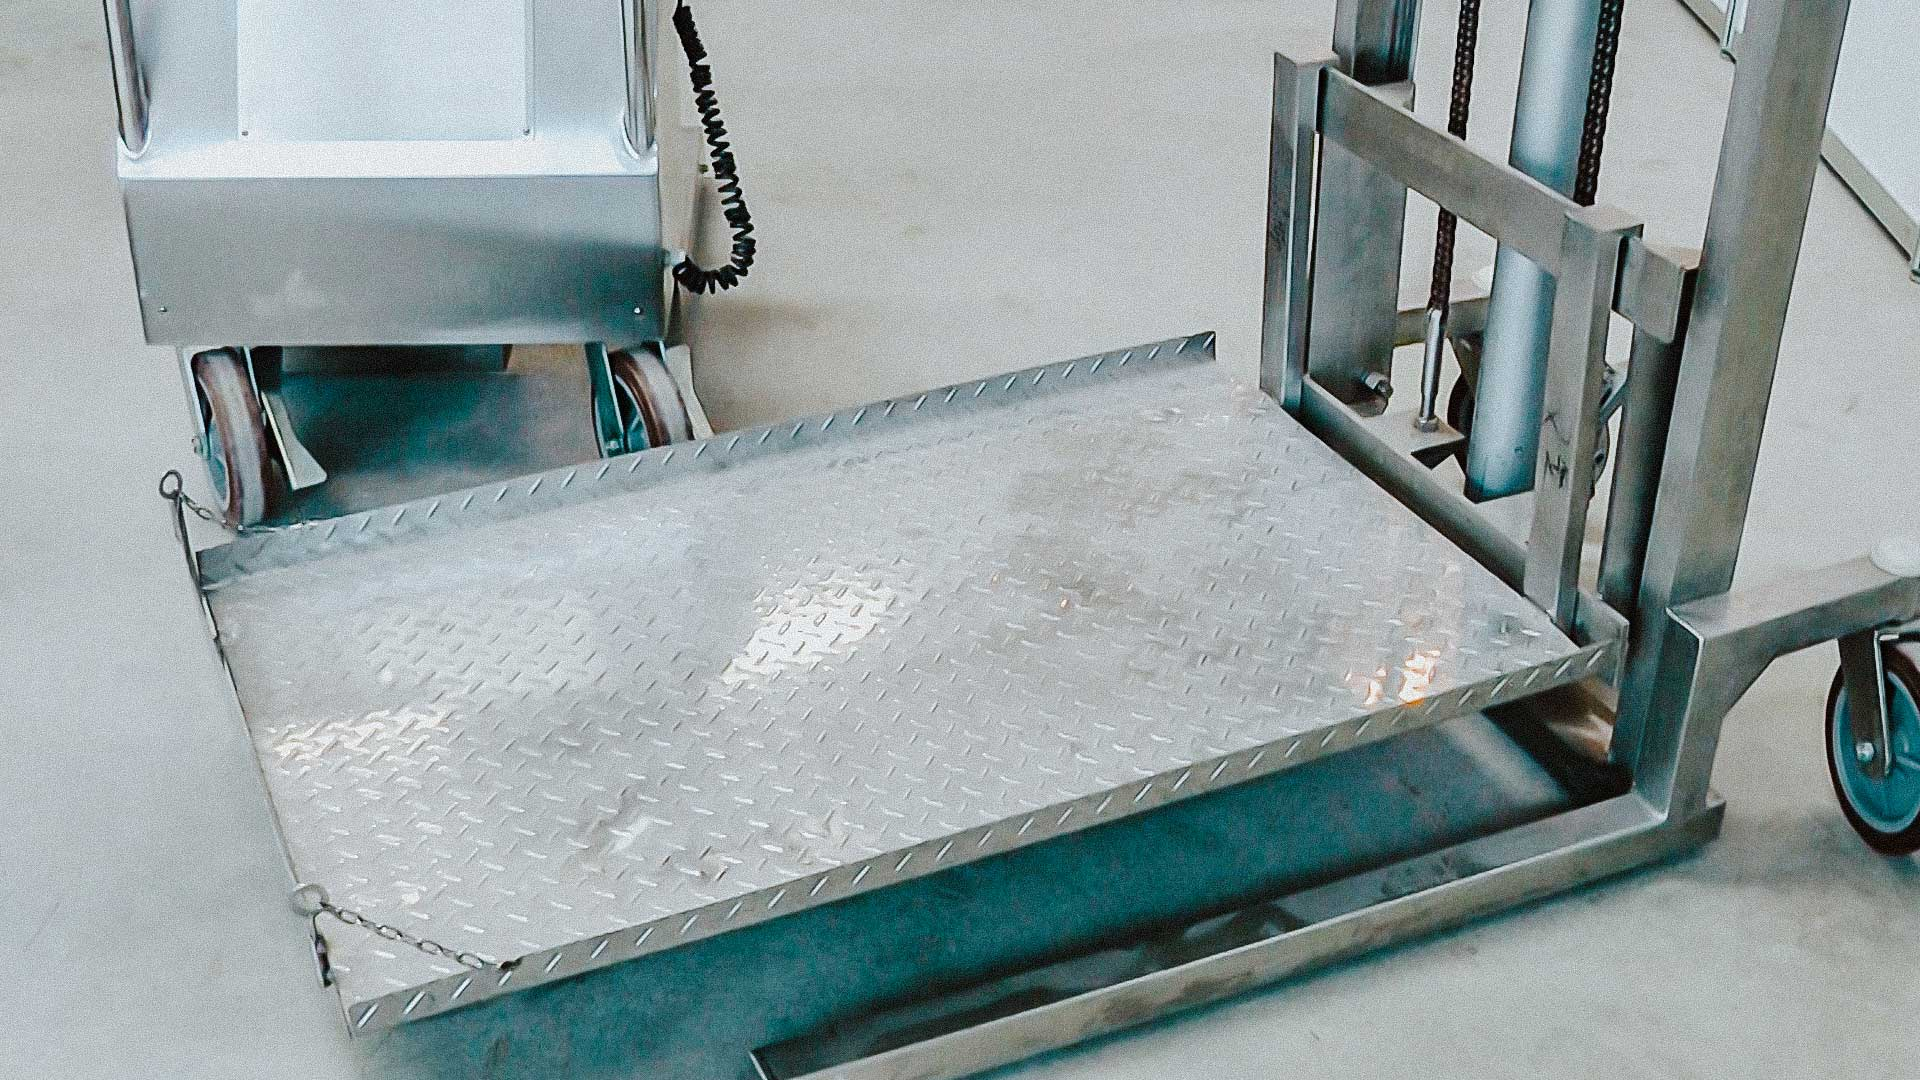 Automatic pick-up for powder containers in pharmaceutical factory